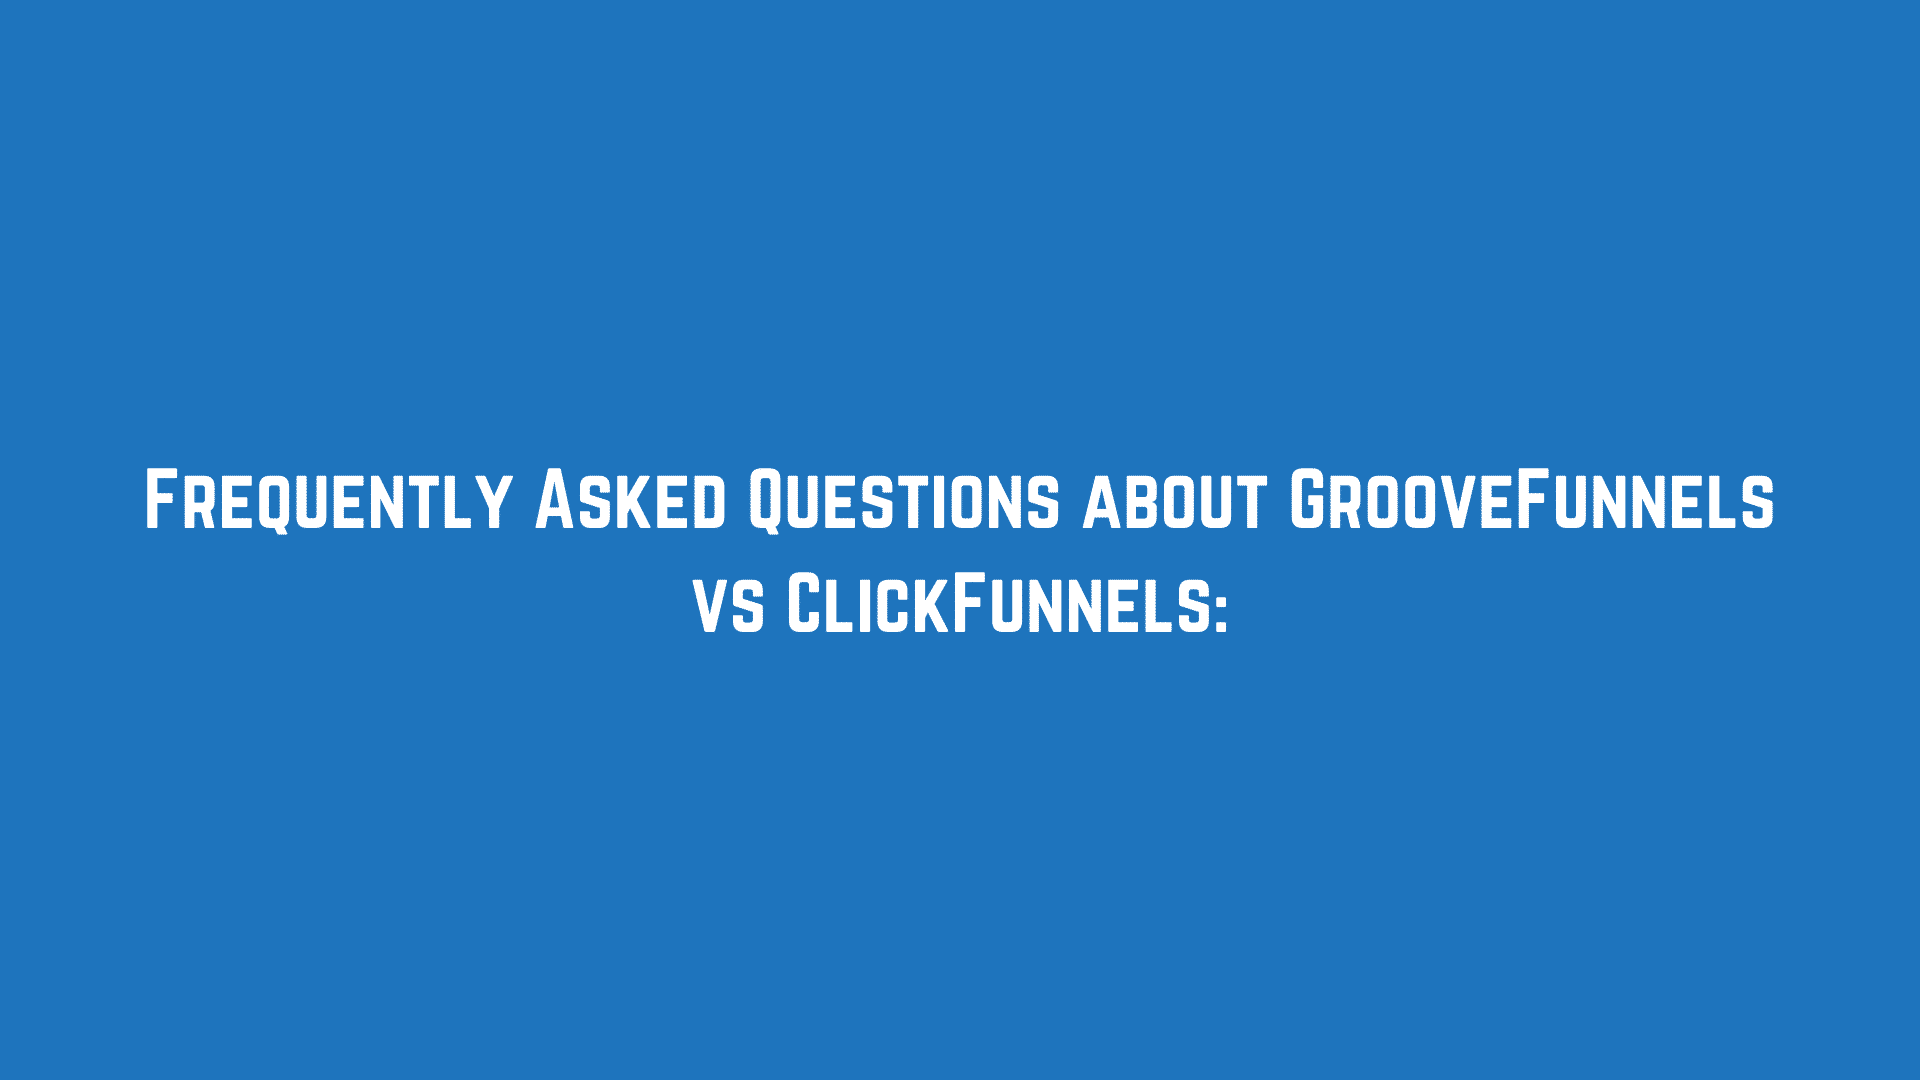 Frequently Asked Questions about GrooveFunnels vs ClickFunnels